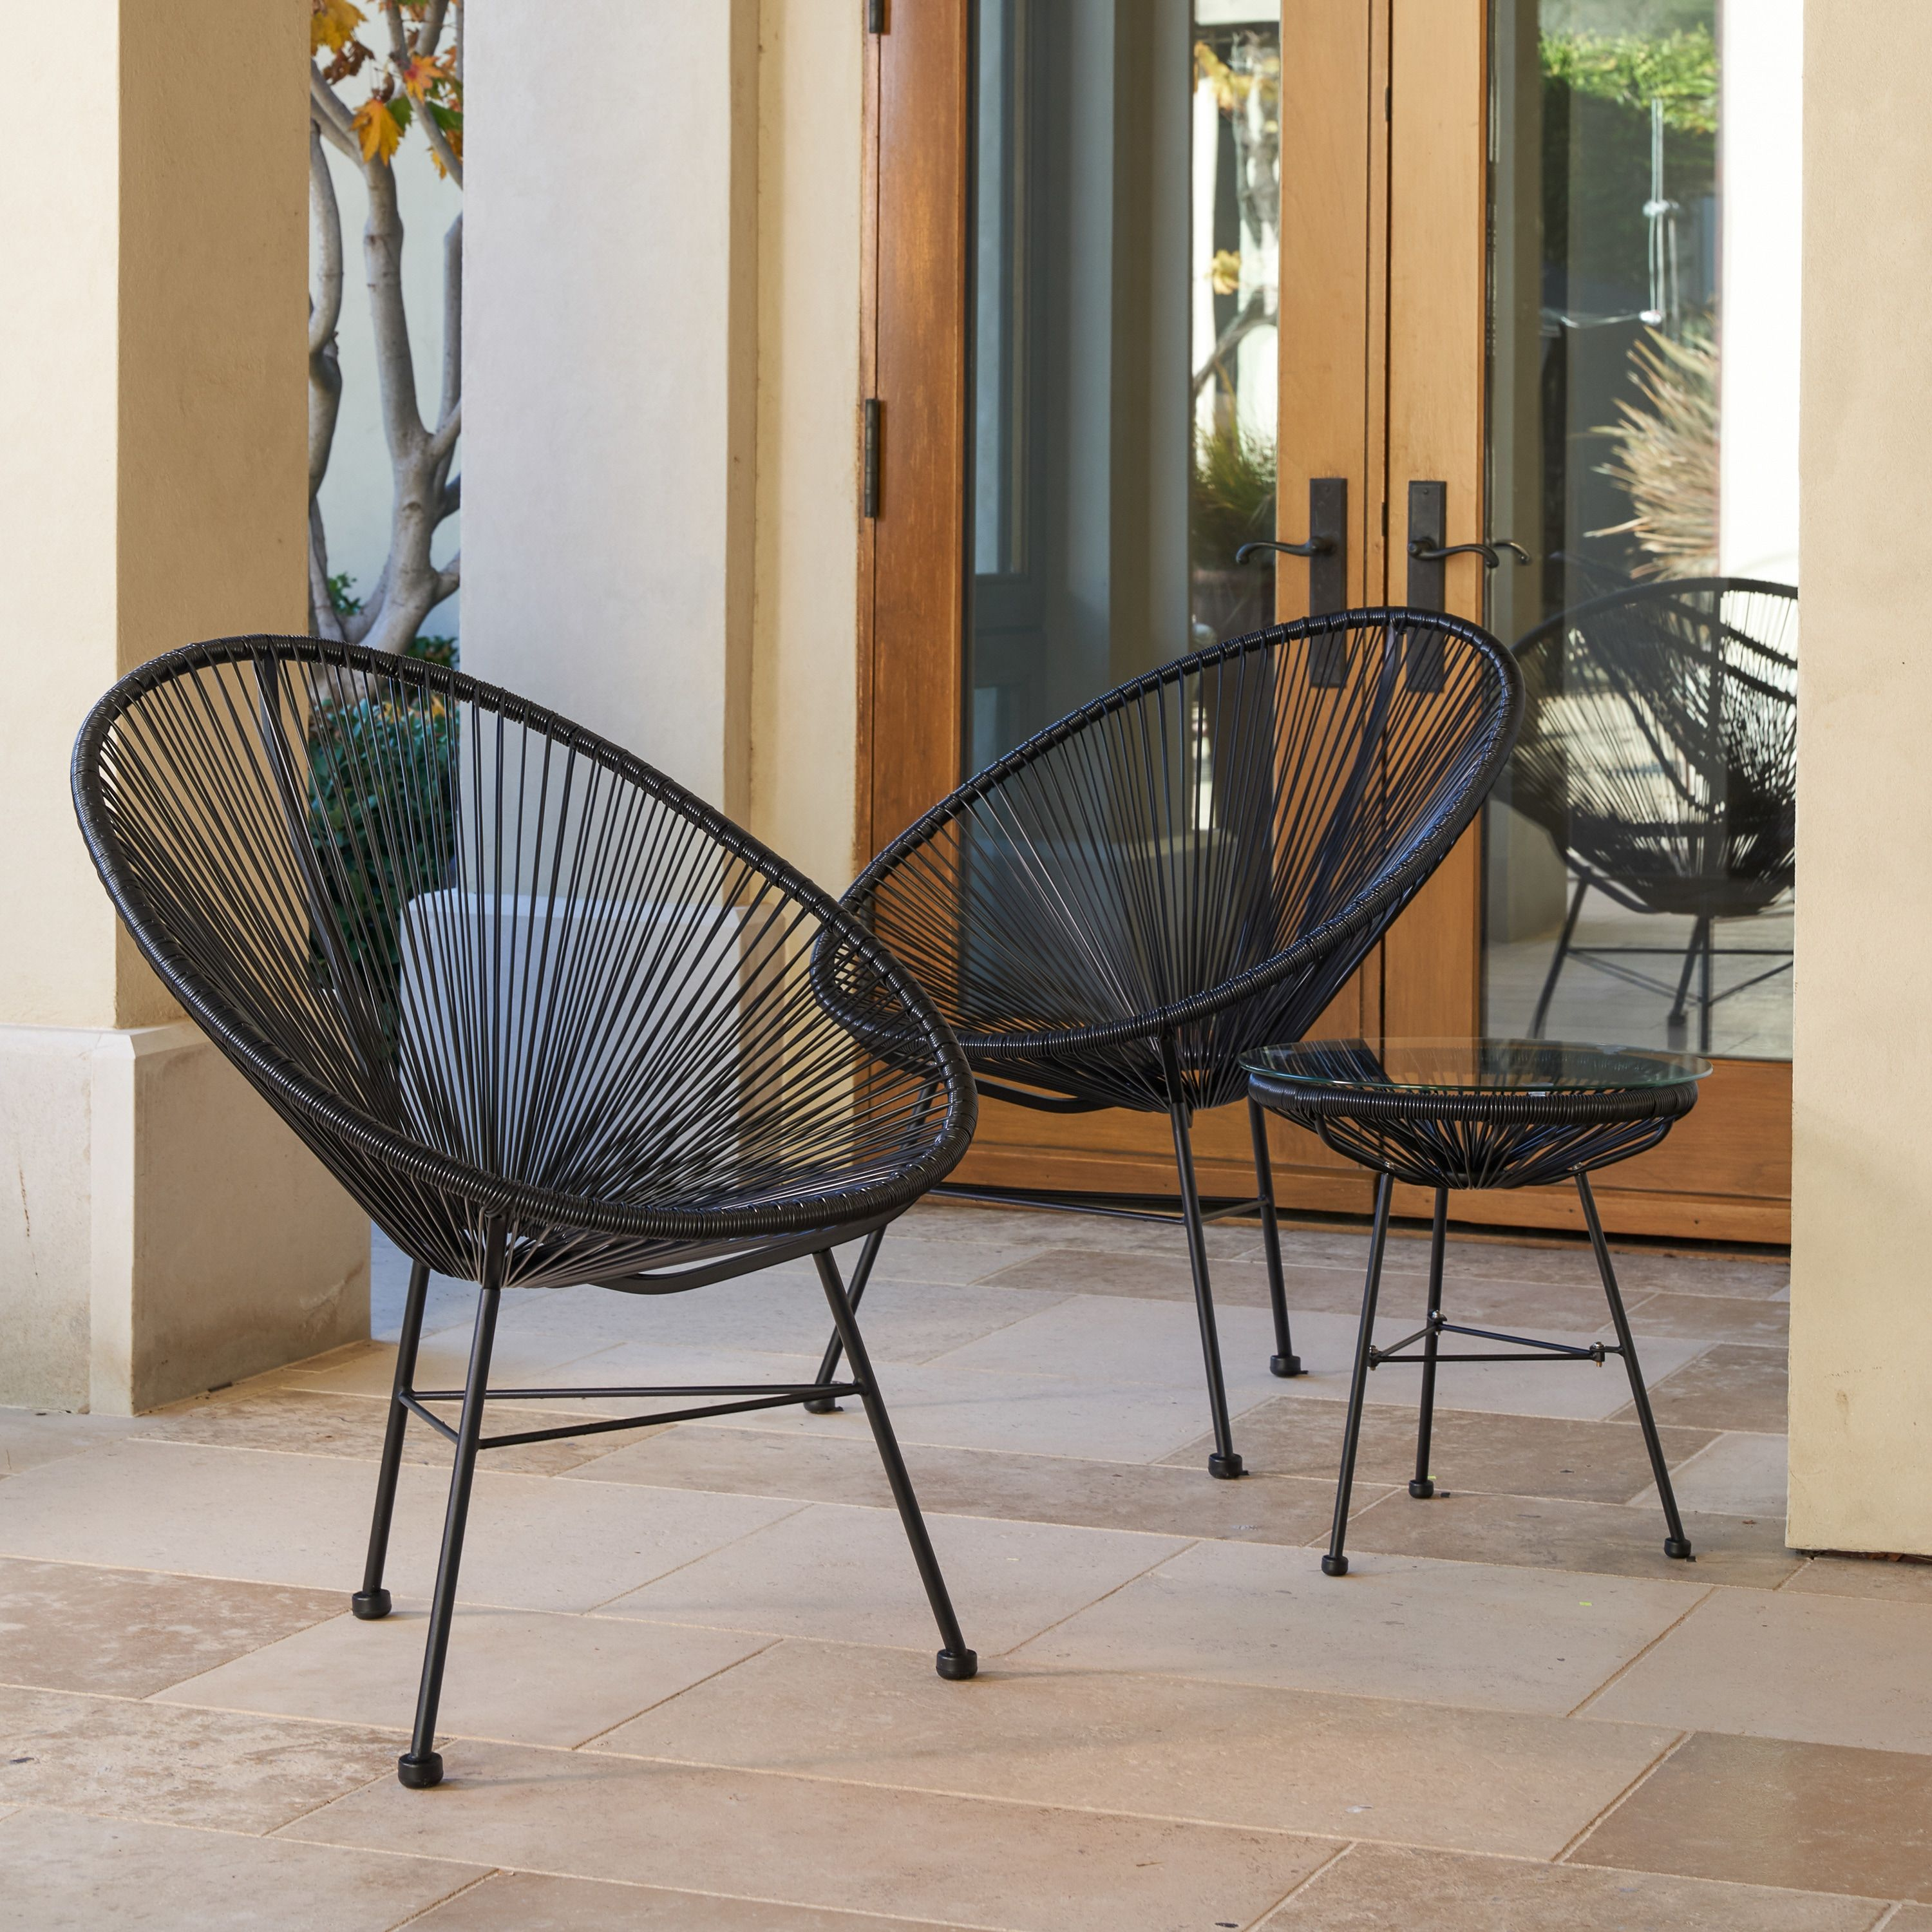 Fabulous Sarcelles Modern Wicker Patio Chairs By Corvus Set Of 2 Gmtry Best Dining Table And Chair Ideas Images Gmtryco